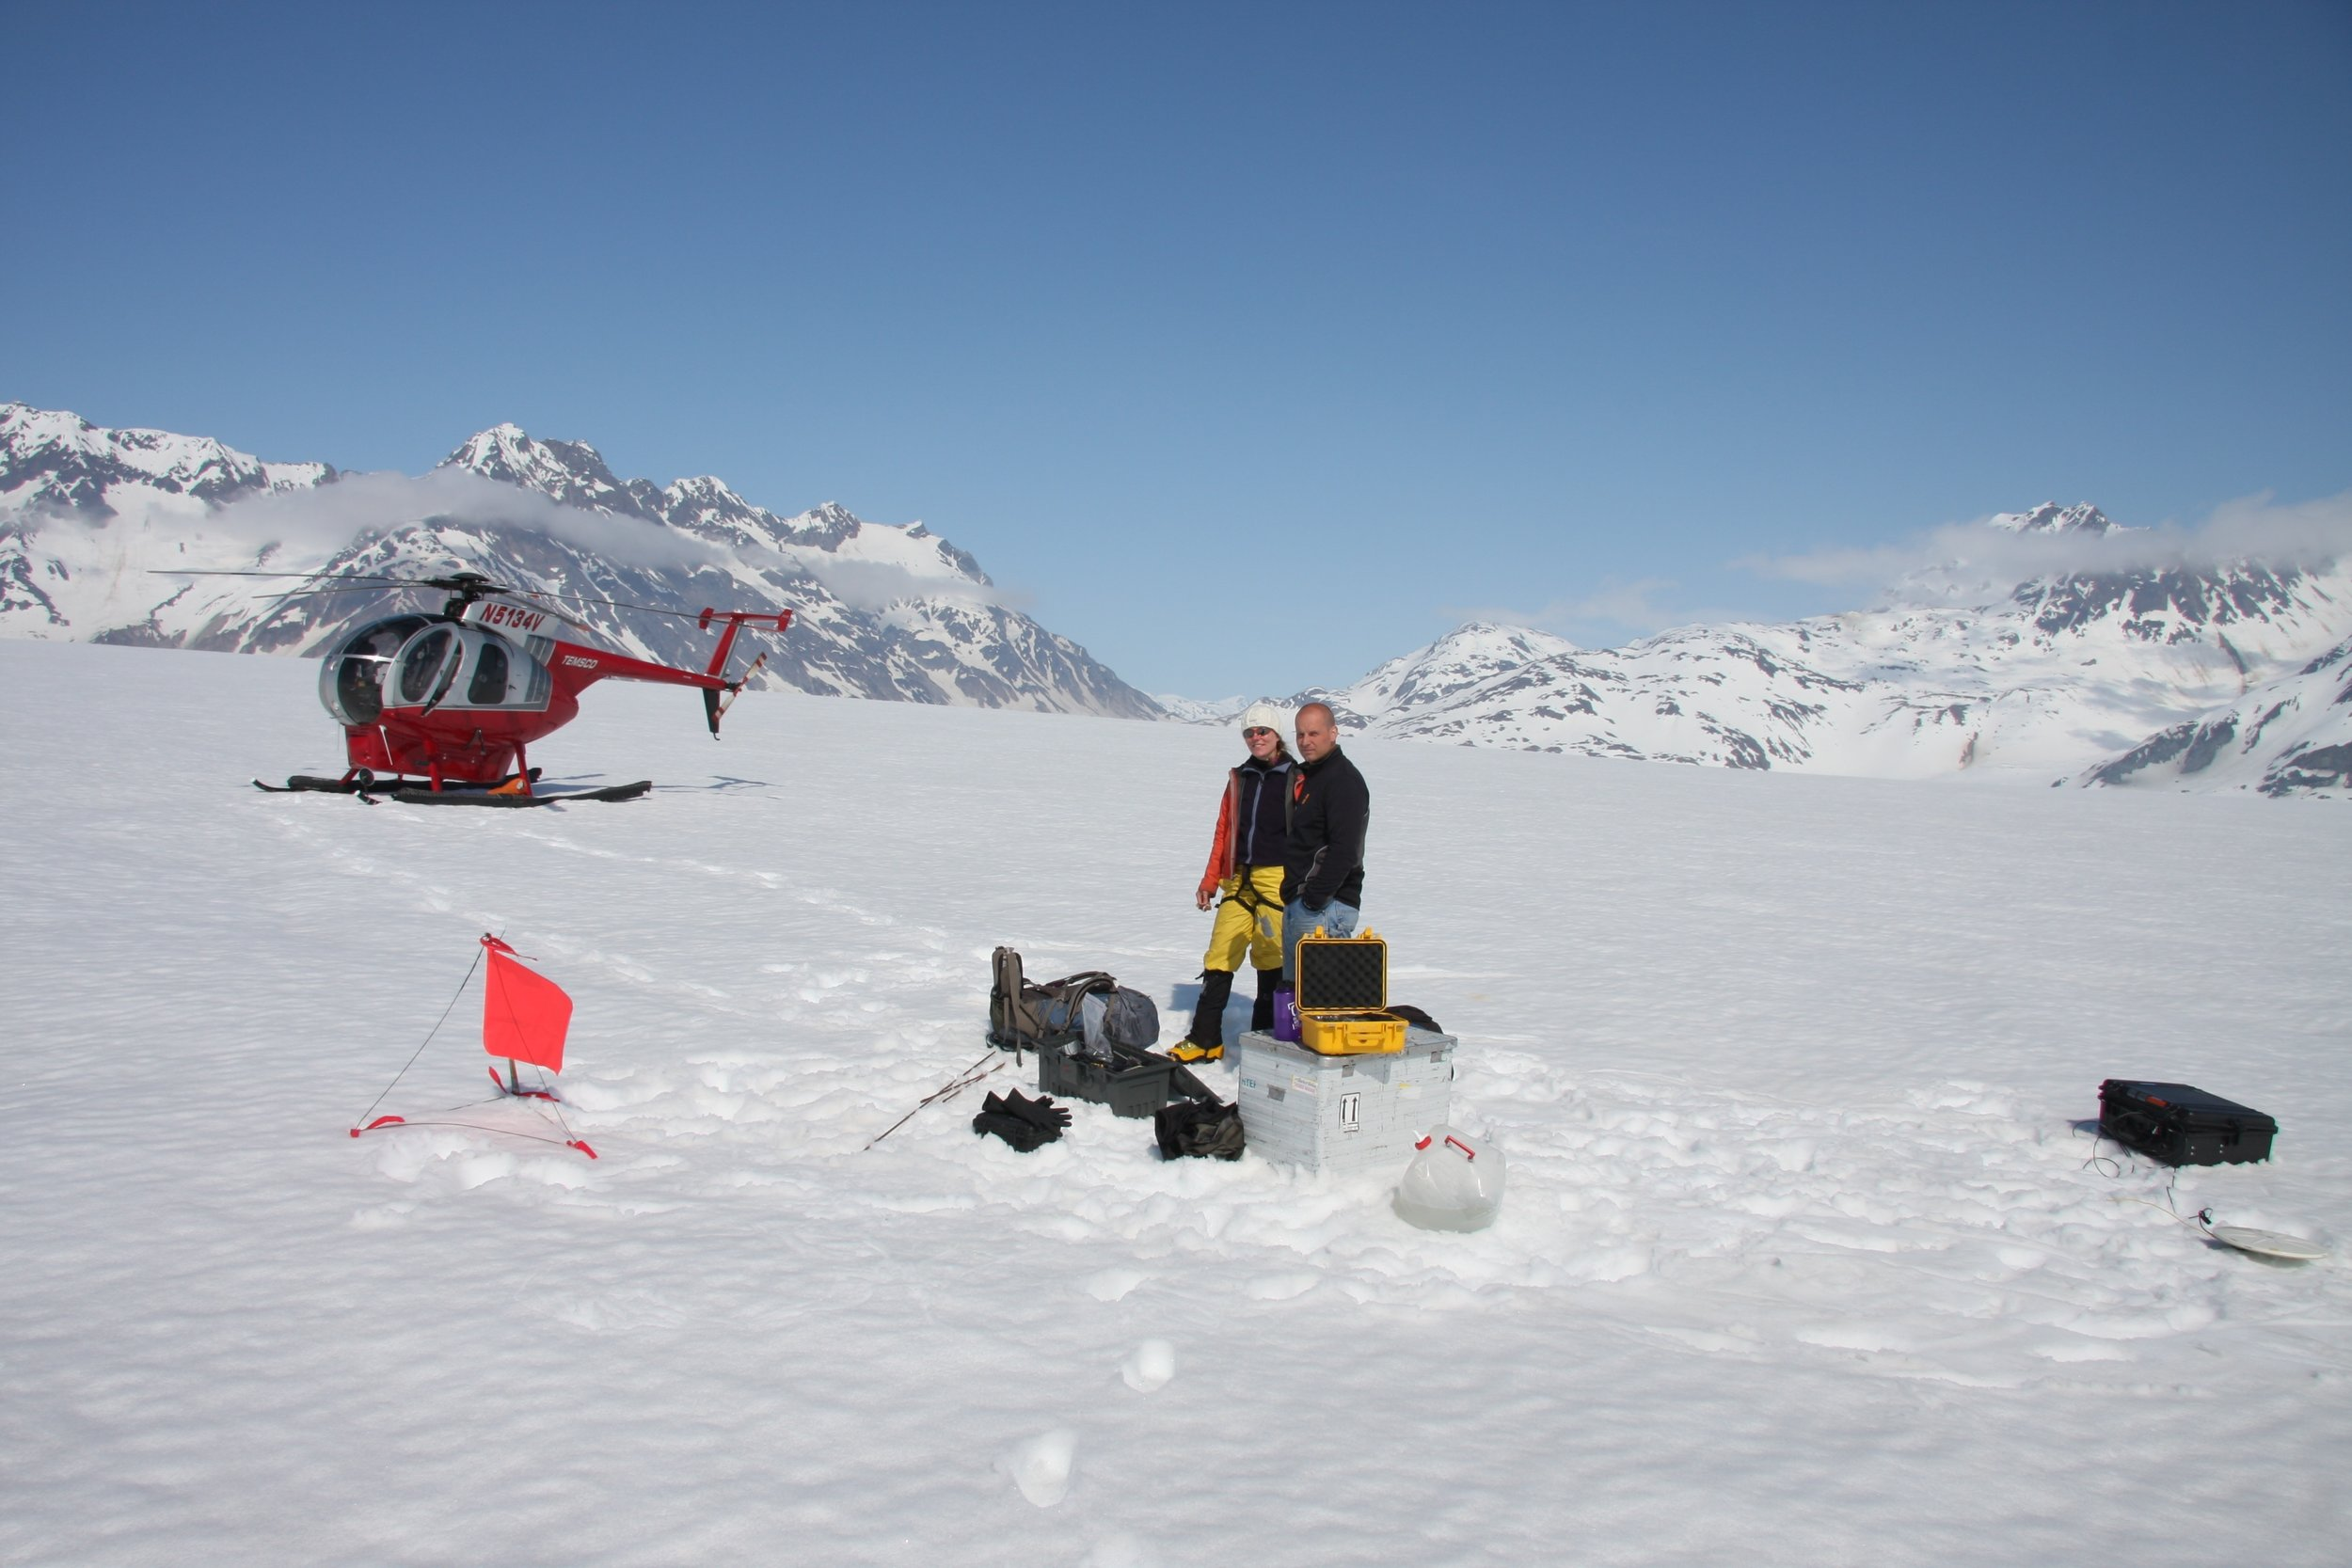 Barbara Truessel and Andy the Heli Pilot at the Mass Balance site.